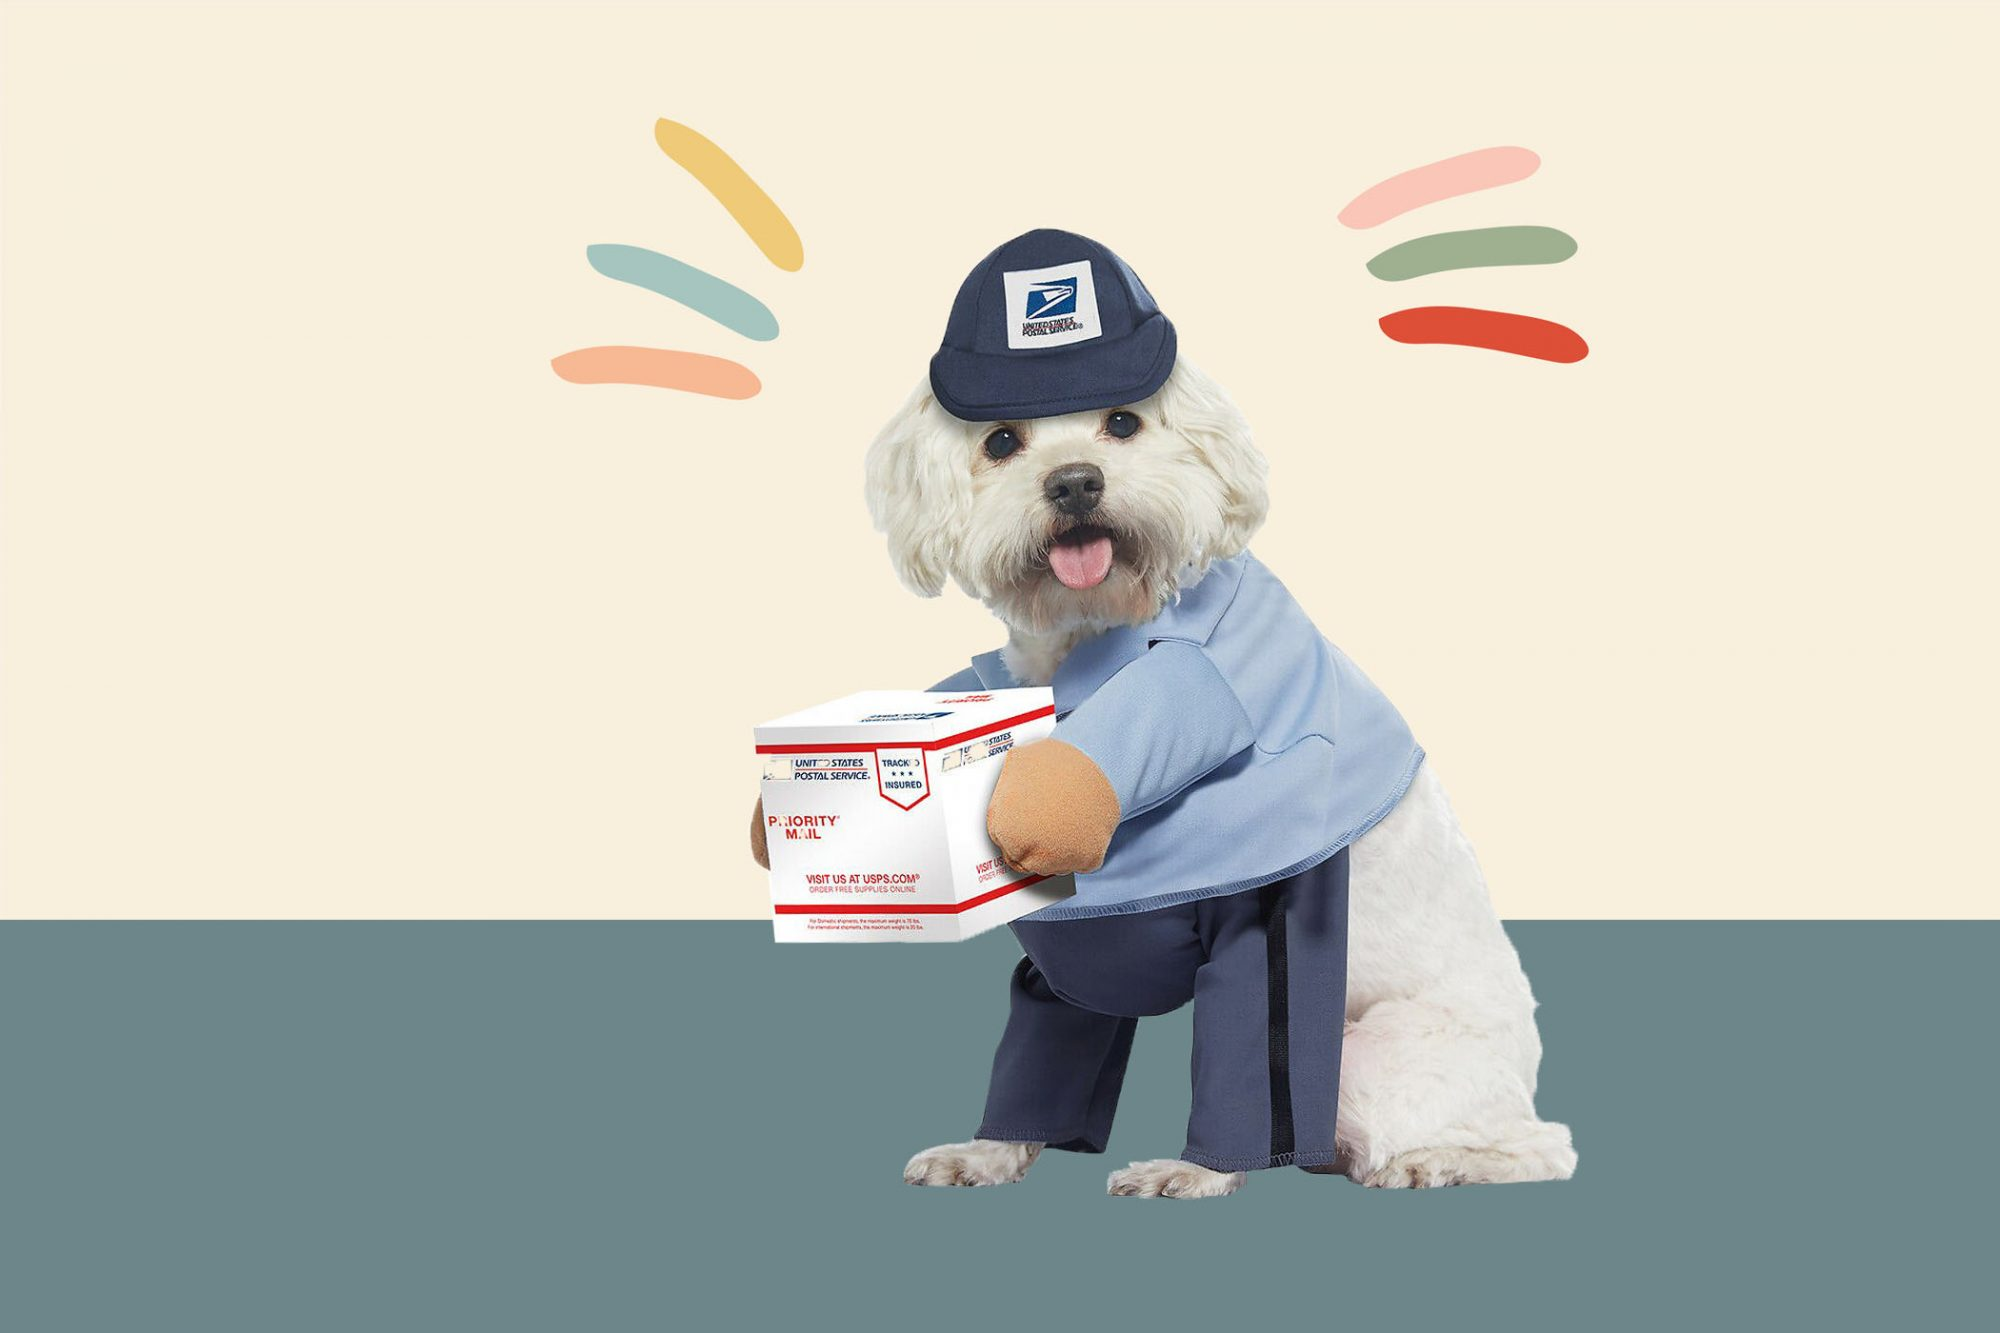 product photo illustrations with dog mailman costume